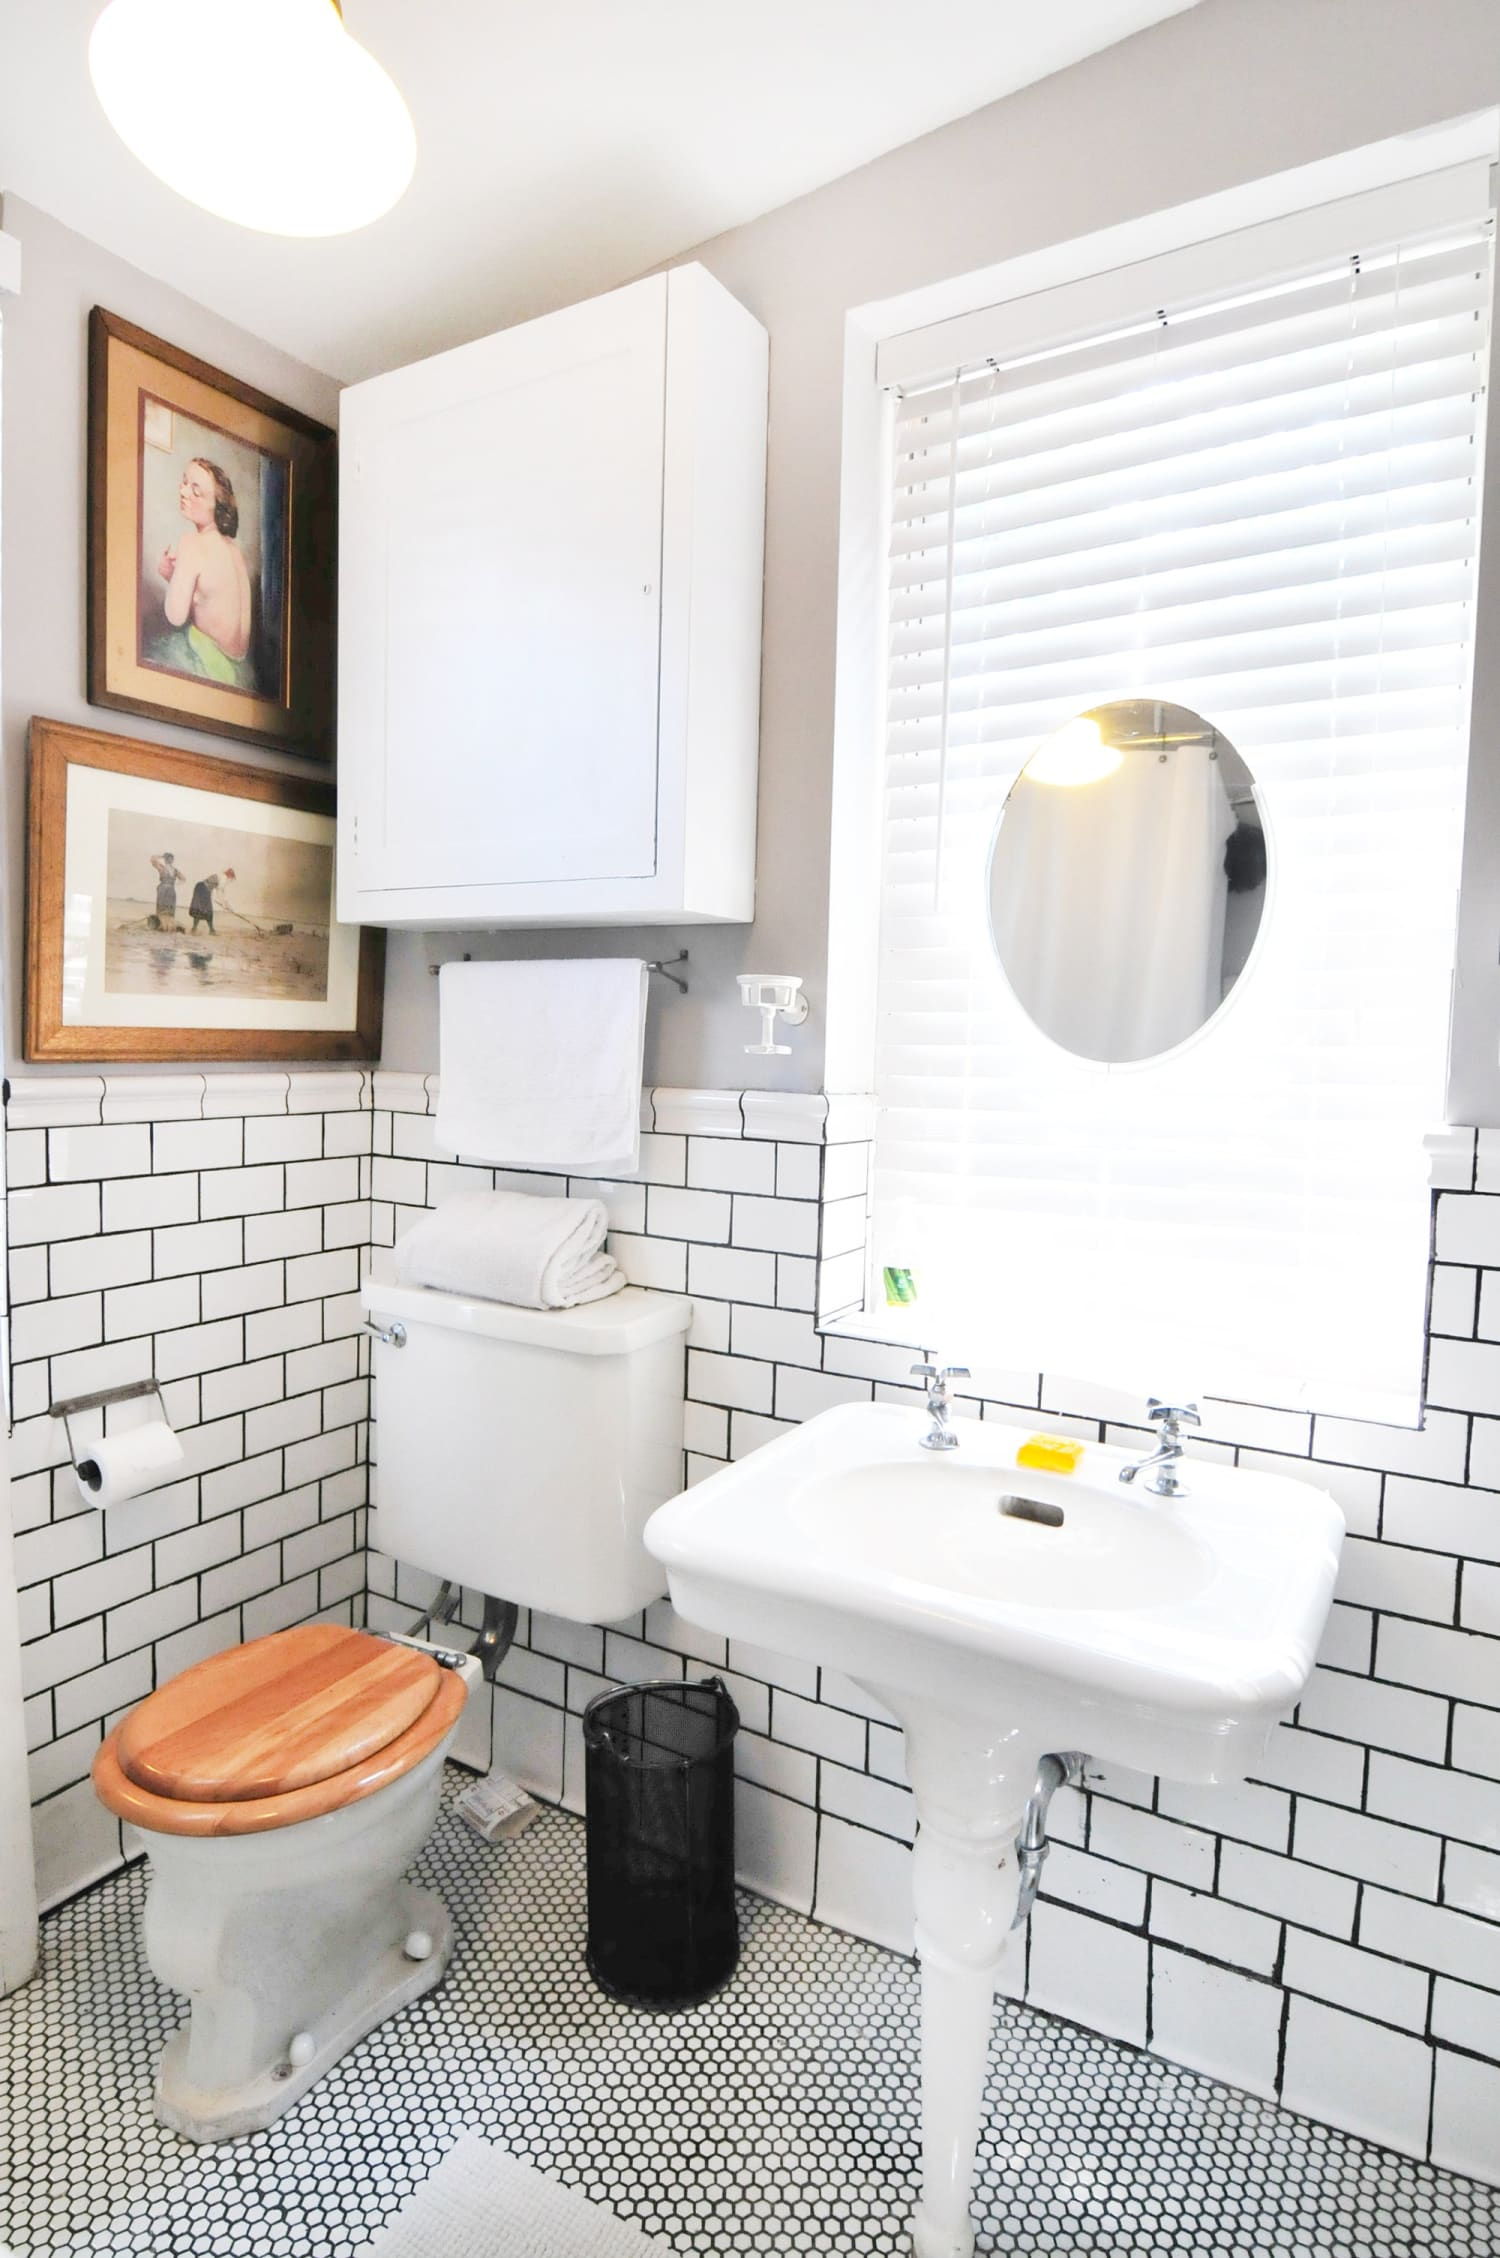 Why You Should Keep A Cutting Board In Your Small Bathroom